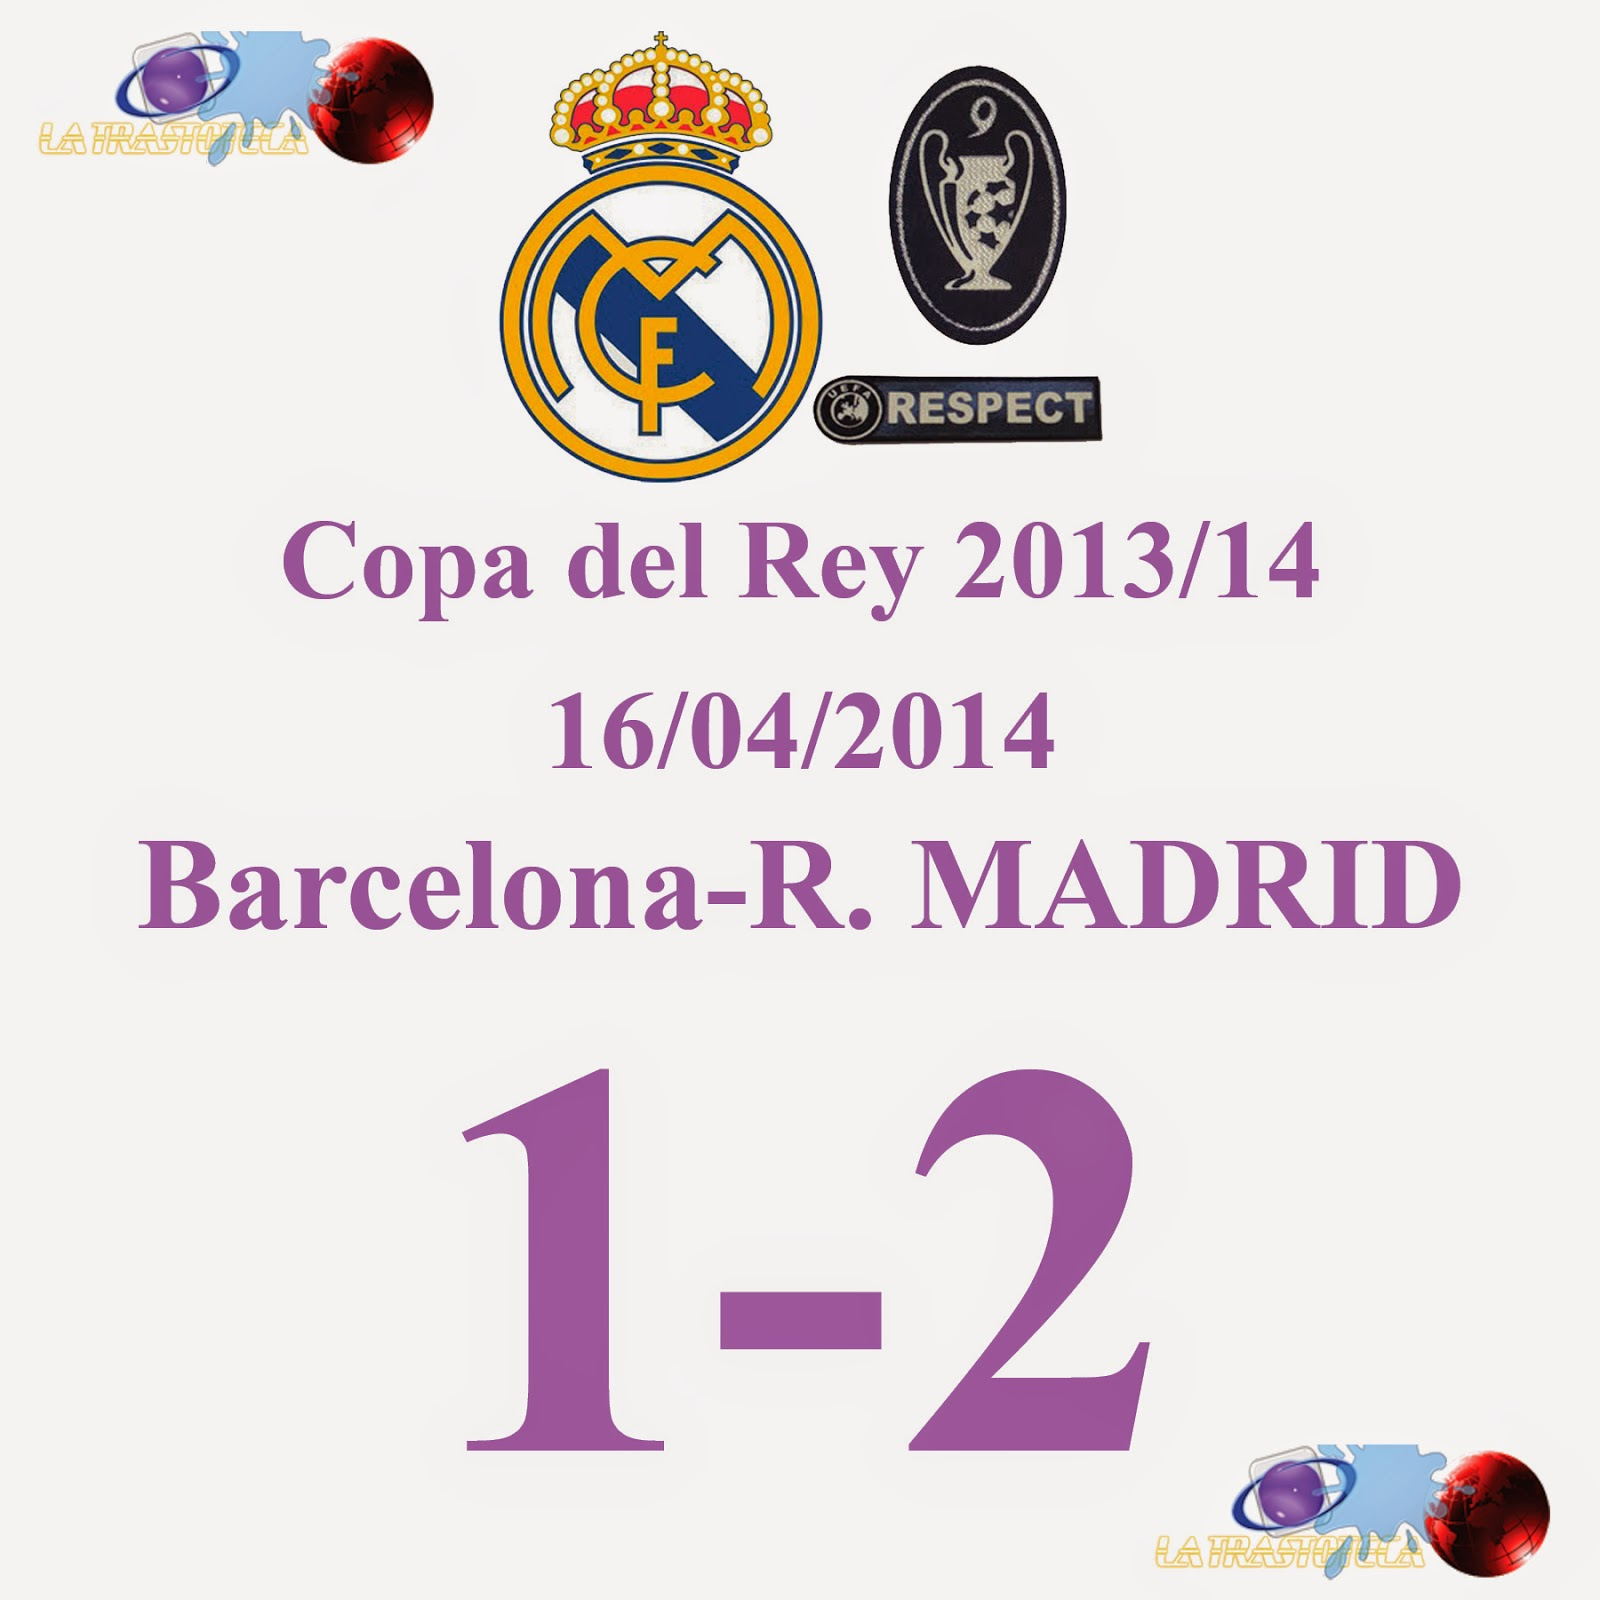 Barcelona 1 - 2 Real Madrid - Final de la Copa del Rey 2014 - 16/04/2014 REAL MADRID CAMPEÓN DE LA COPA DEL REY 2014